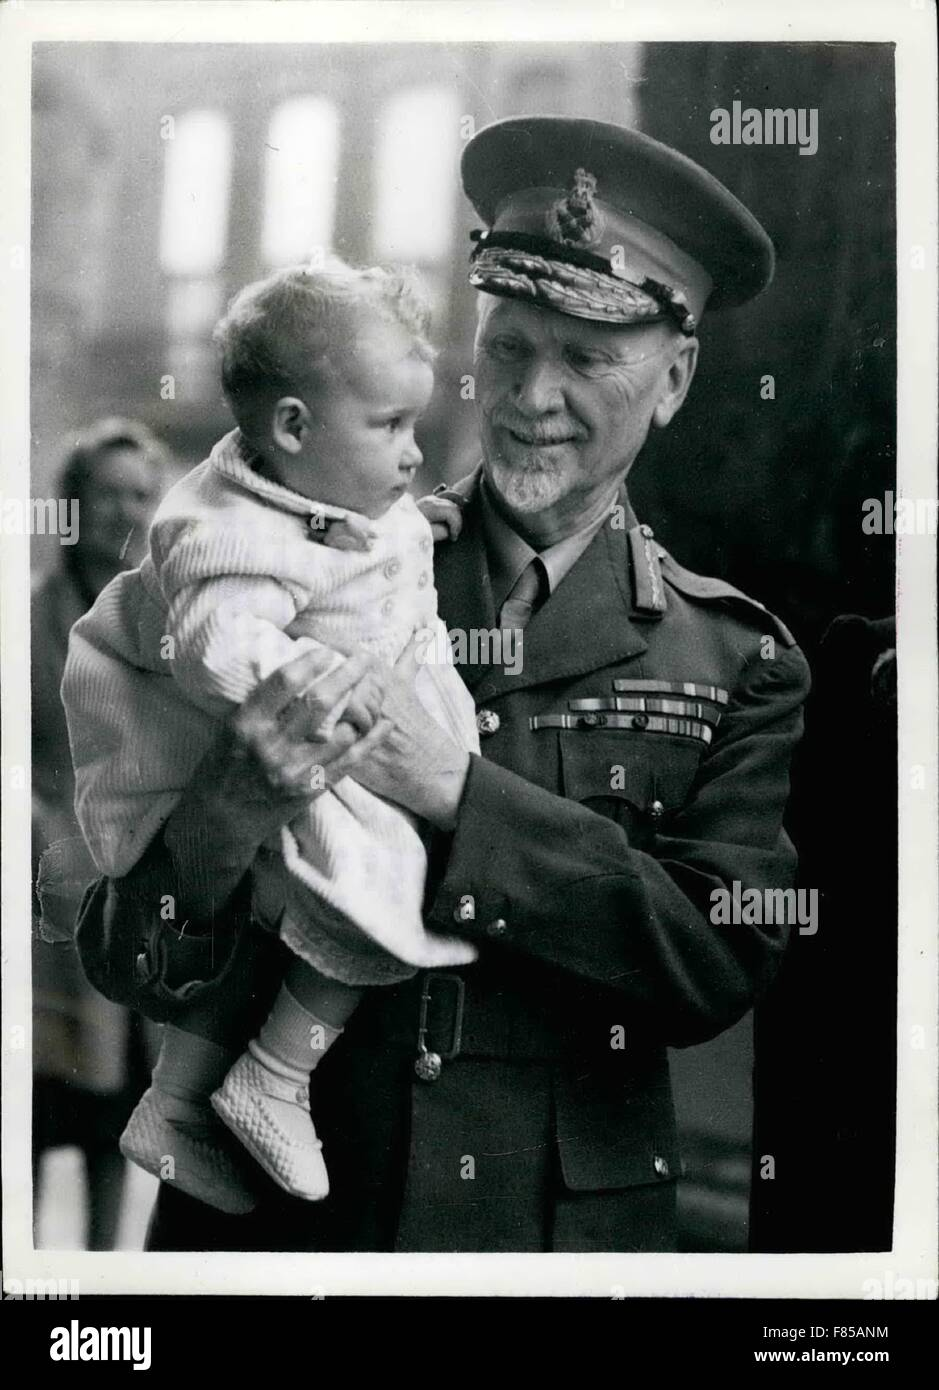 1958 - General Smuts becomes Godfather.: Gen. Smuts has become the Godfather of little Angela Petrina Huge, the - Stock Image